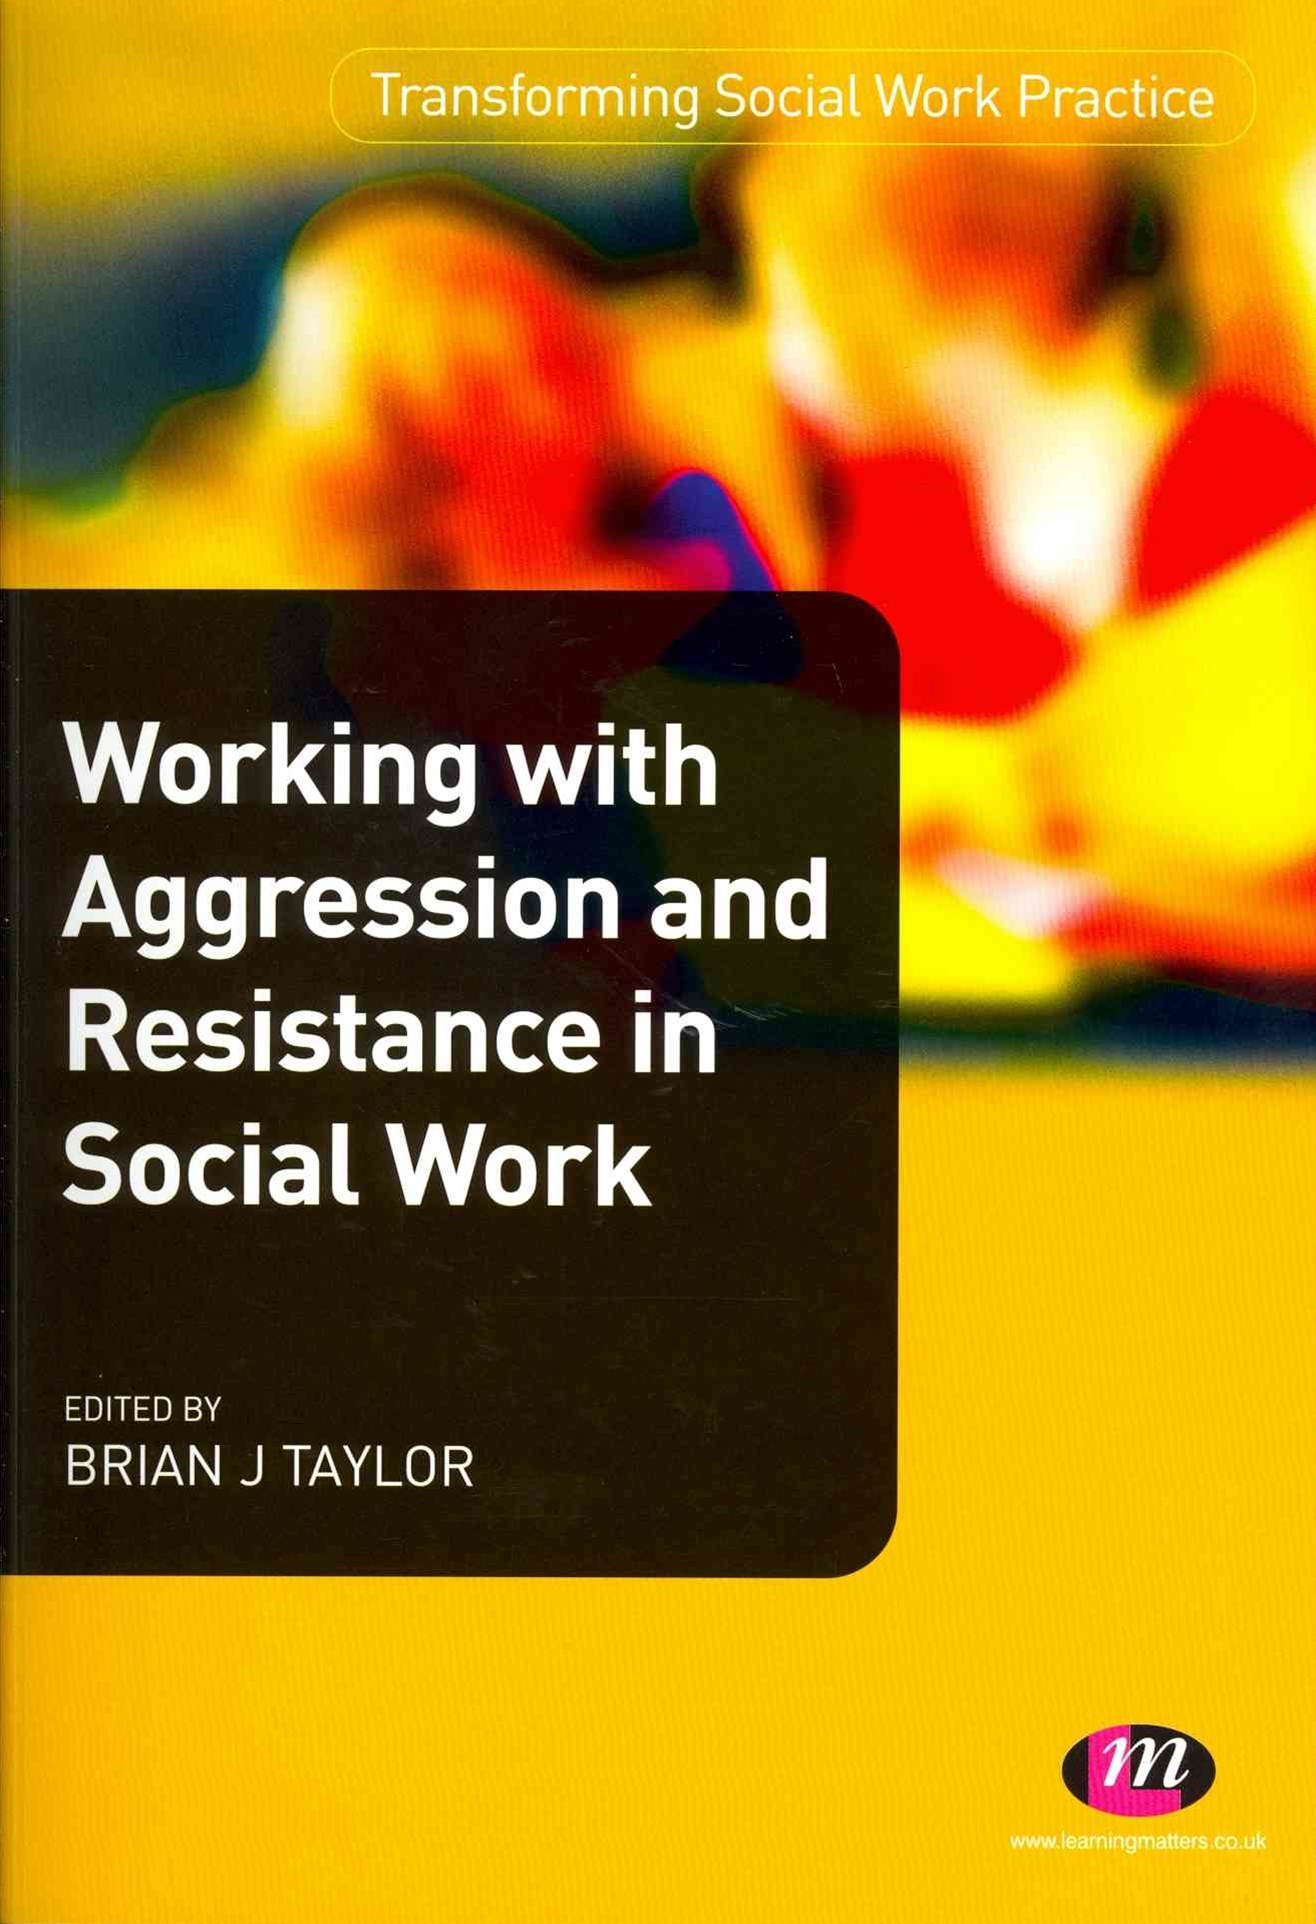 Working with Aggression and Resistance in Social Work